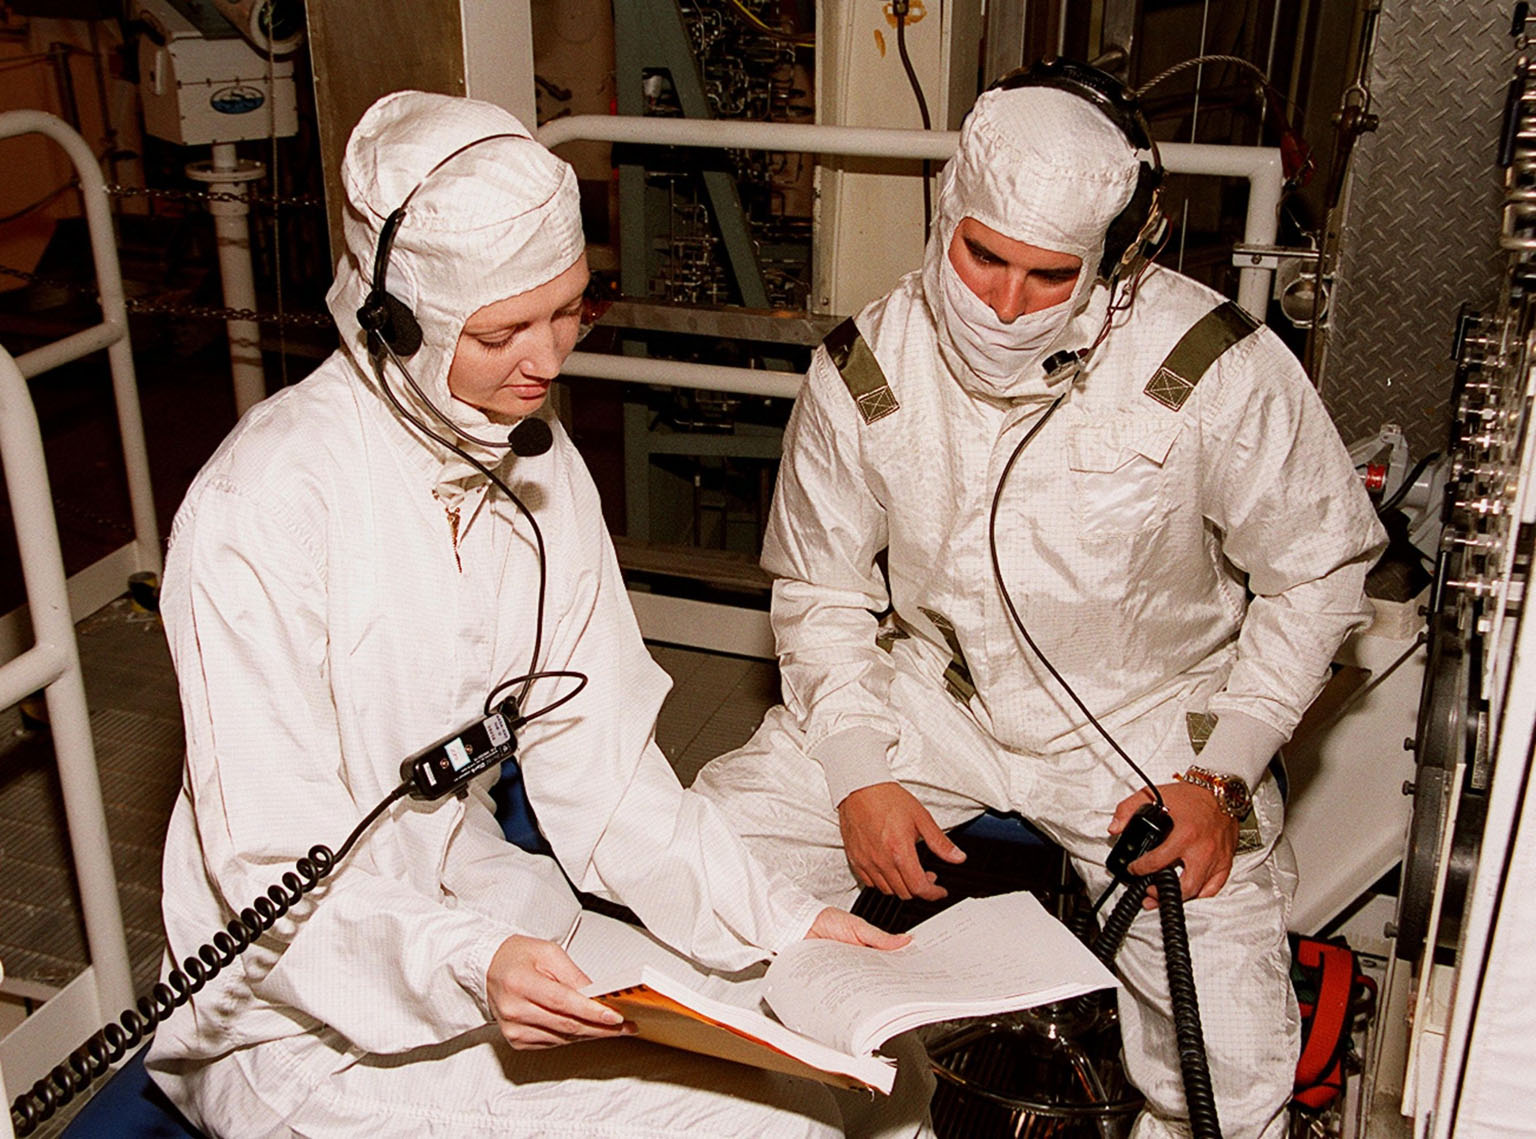 KENNEDY SPACE CENTER, FLA. -- In the Payload Changeout Room at Launch Pad 39A, technicians read a manual on the Payload Ground-Handling Mechanism hook instrumentation unit. The PGHM will be used in moving the U.S. Lab Destiny out of the payload canister and into the PCR. Destiny will then be transferred to the payload bay of Atlantis for mission STS-98. A key element in the construction of the International Space Station, Destiny is designed for space science experiments. STS-98 is the seventh construction flight to the ISS. Launch of STS-98 is scheduled for Jan. 19 at 2:11 a.m. EST